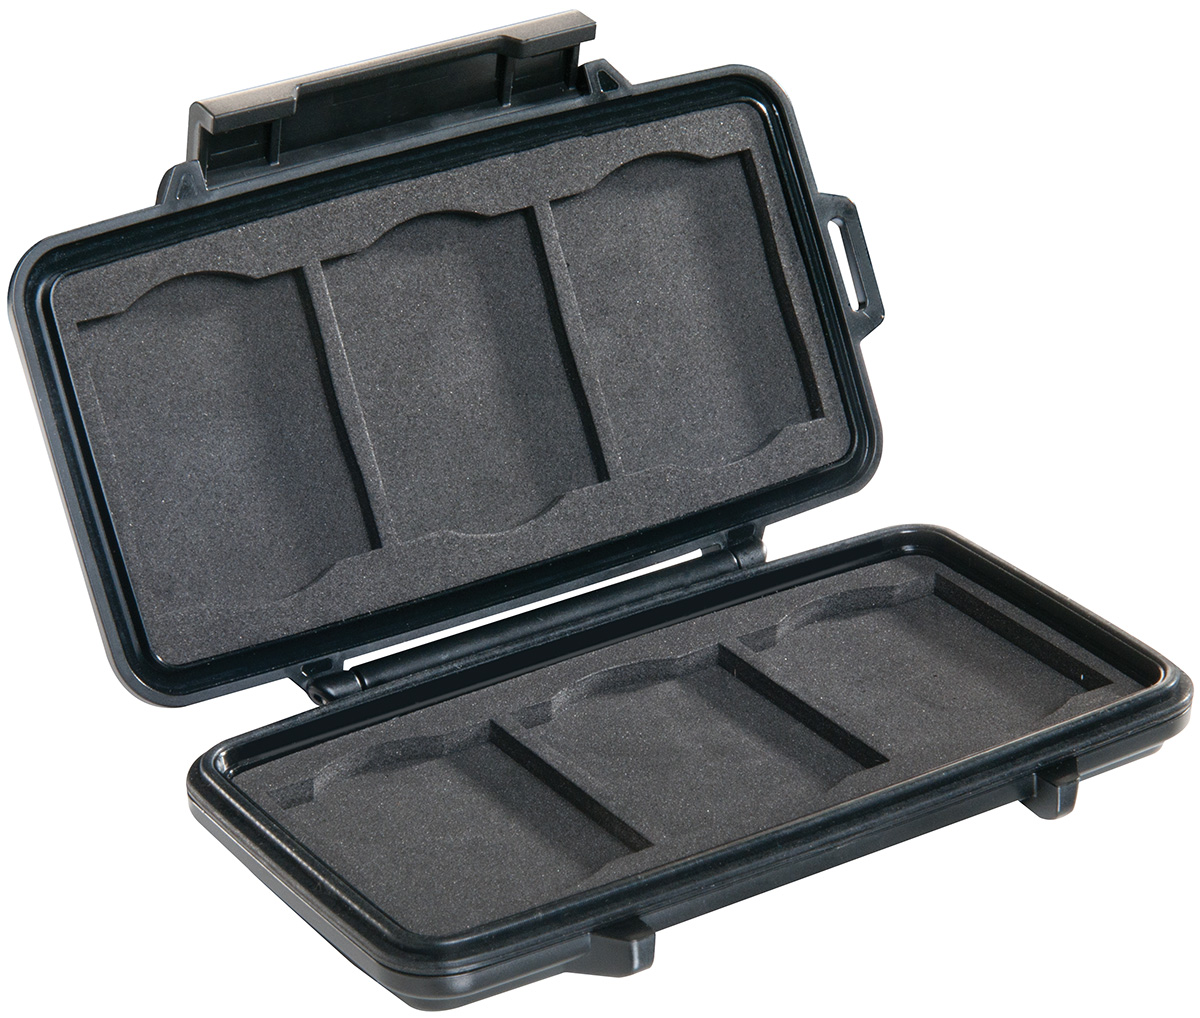 pelican peli products 0945 waterproof camera compact flash case